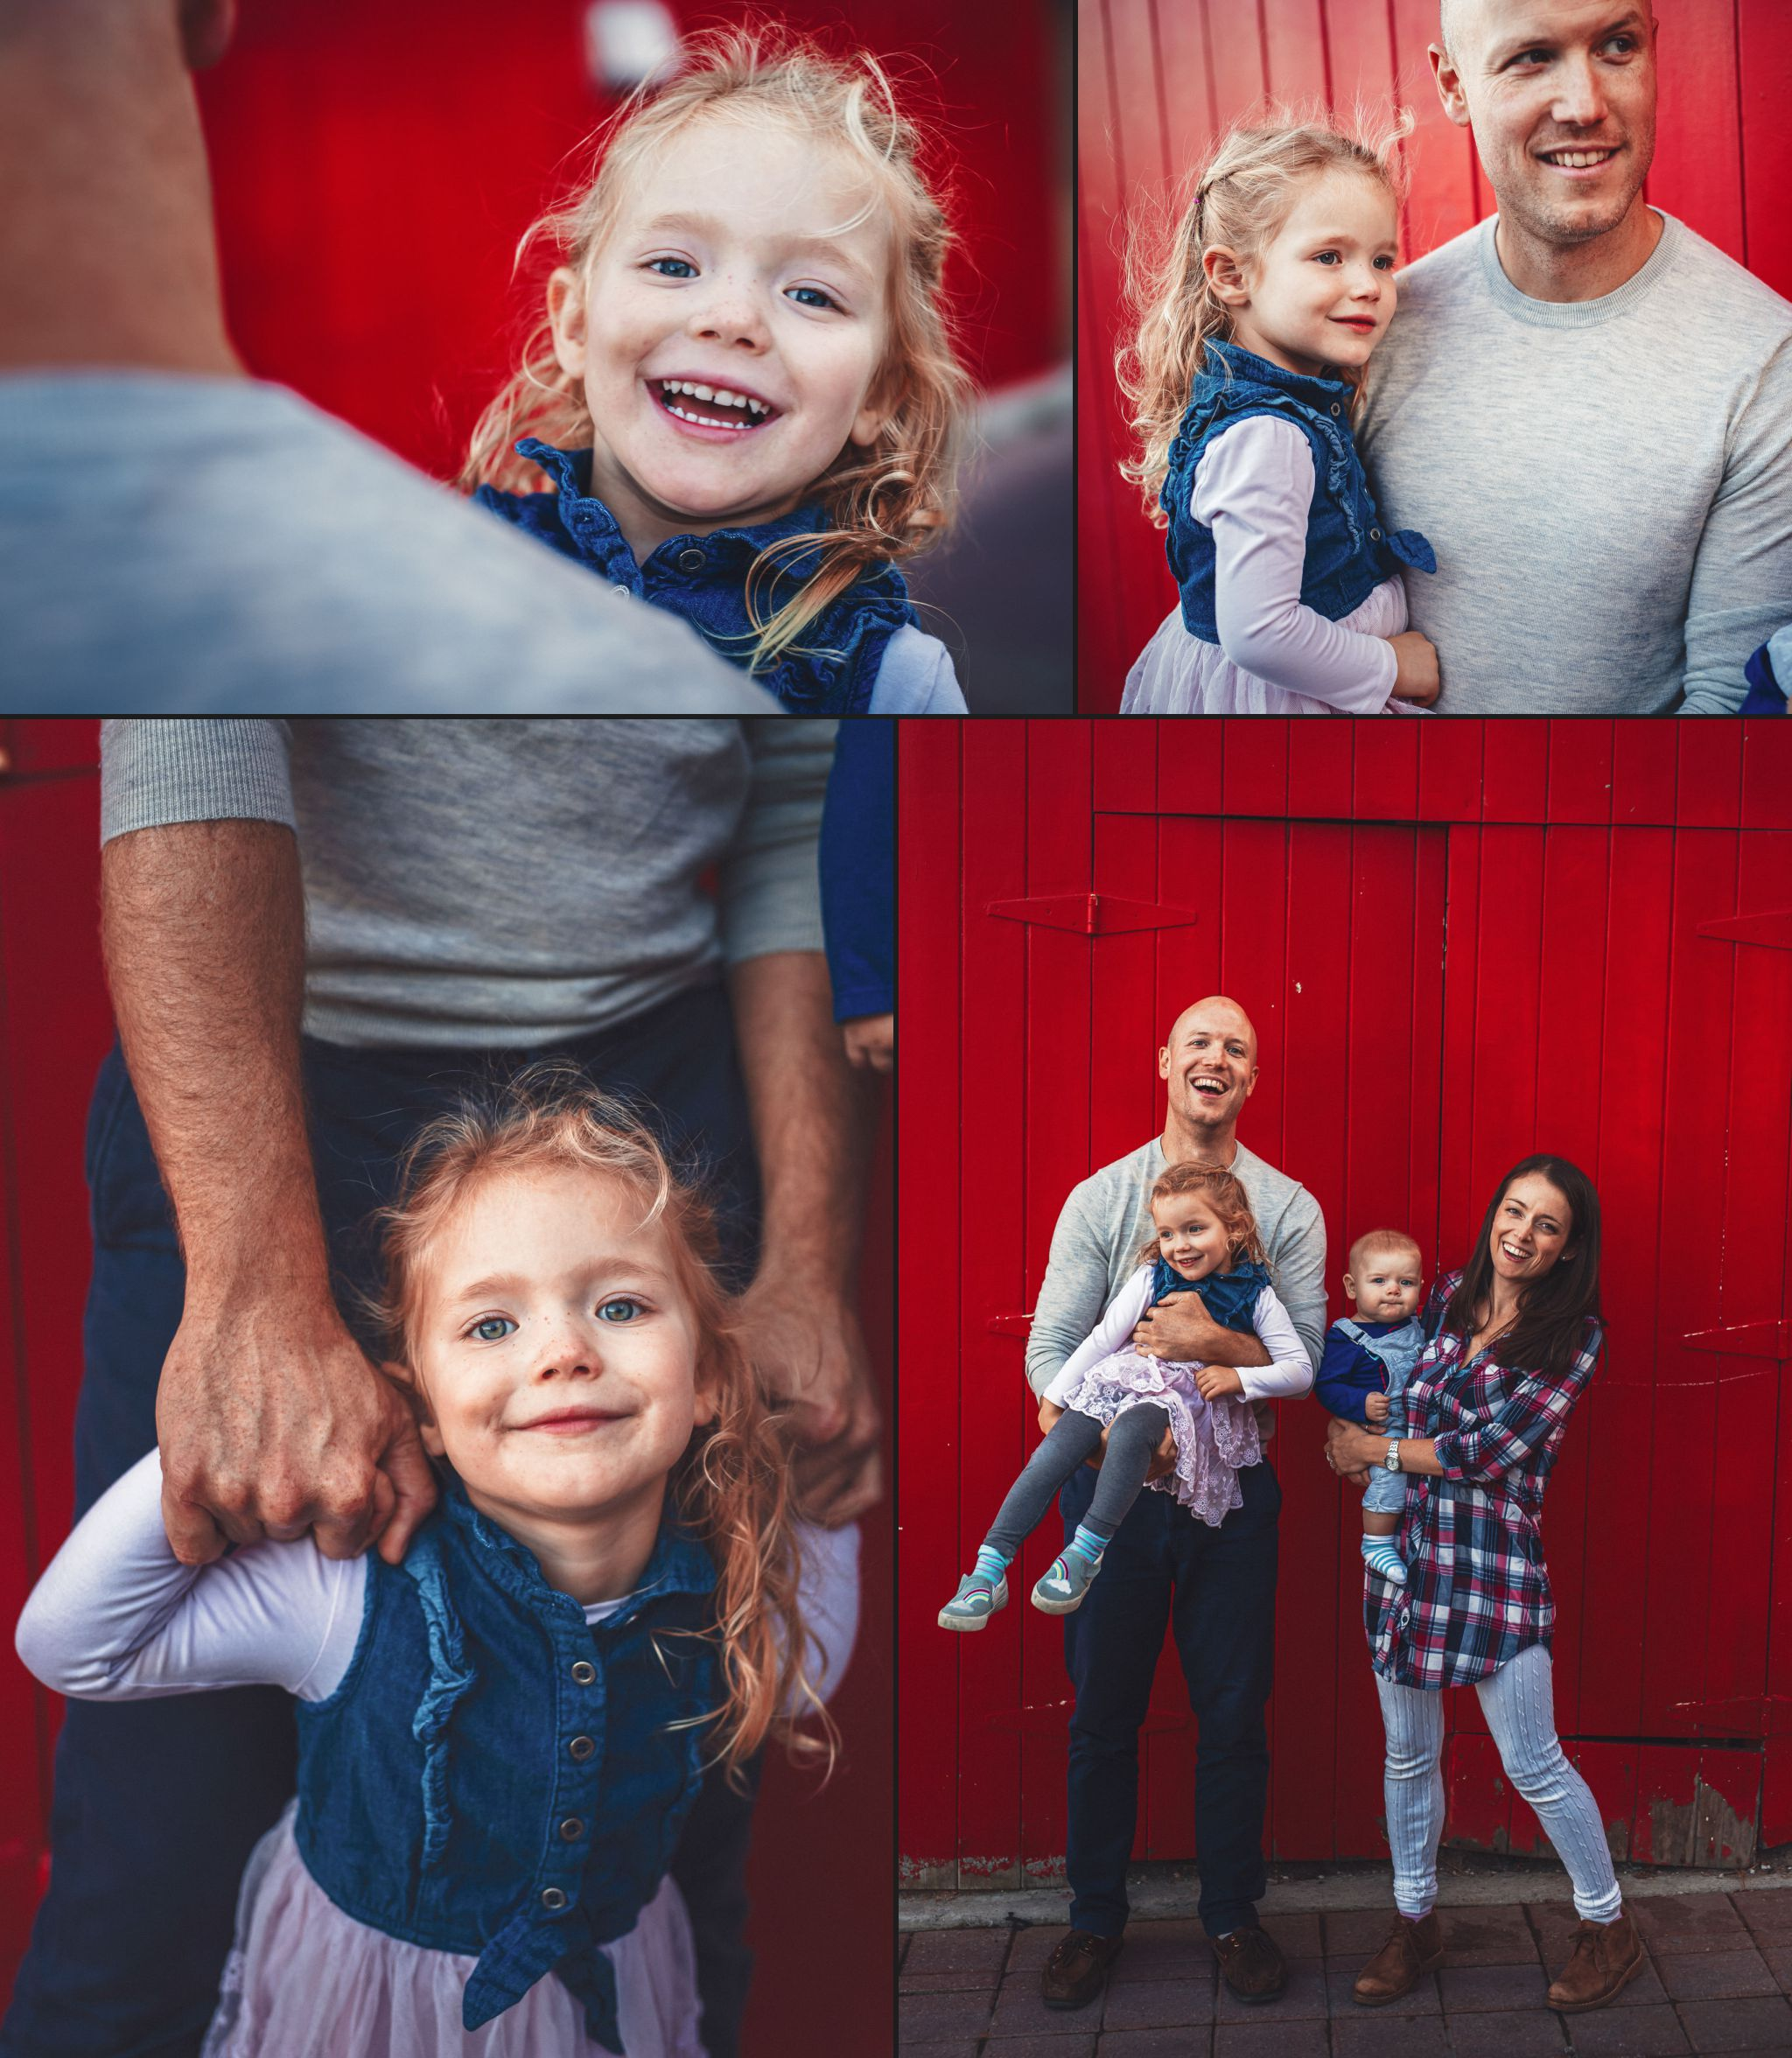 Collage of parents holding kids in front of red wall